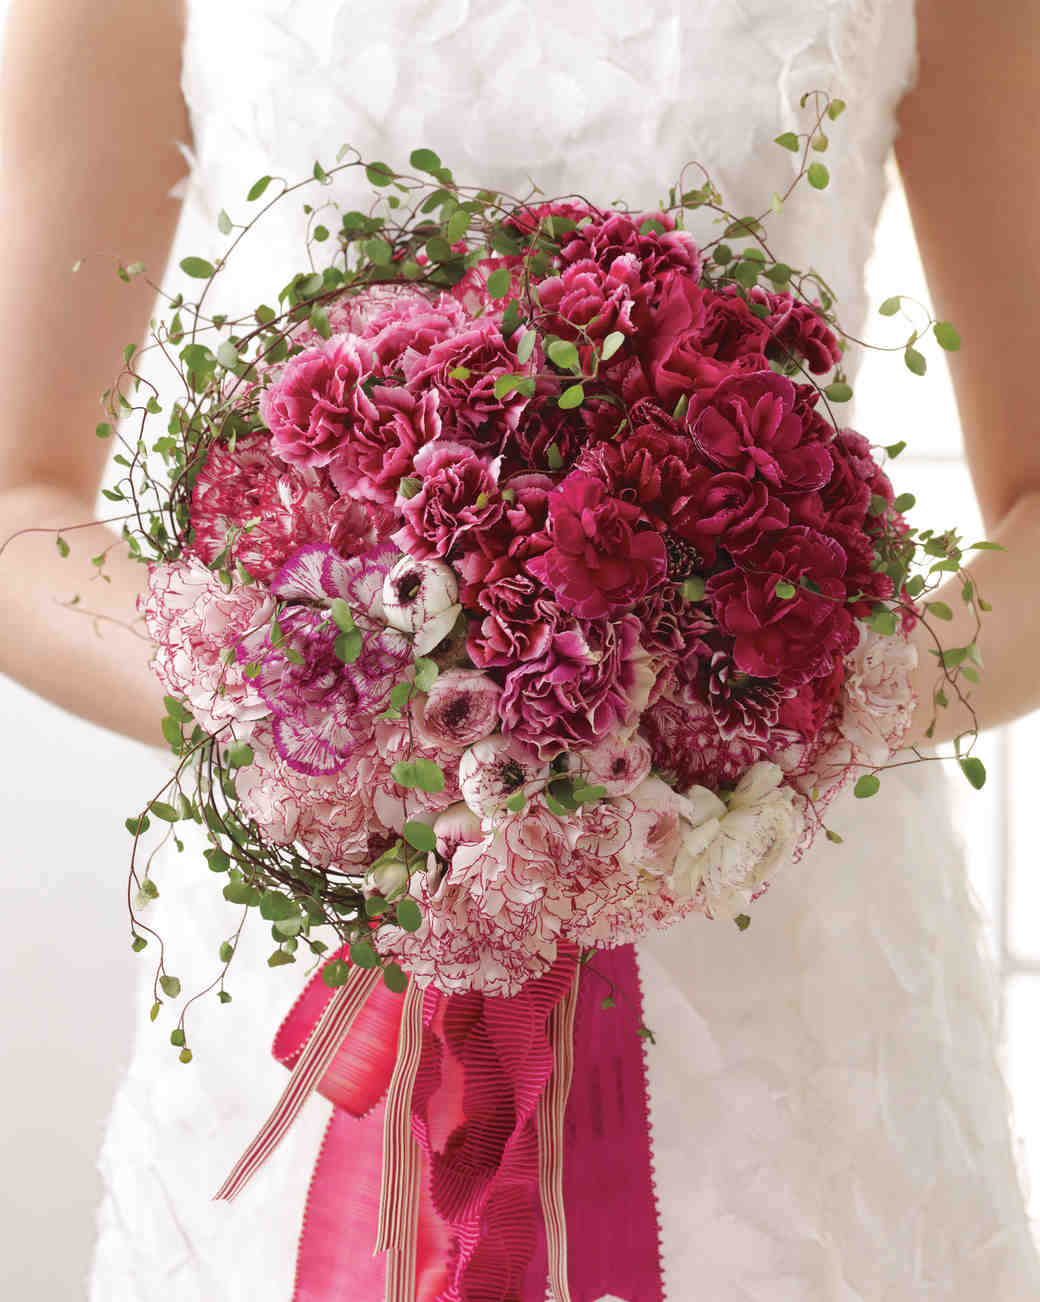 Top 5 most popular wedding bouquet flowers and their symbolic meanings source httpassetsrthastewartweddingsstyleswmax 520 highdpid22carnations 5 mwd108375carnations 5 mwd108375vertgitokvyg90cfb izmirmasajfo